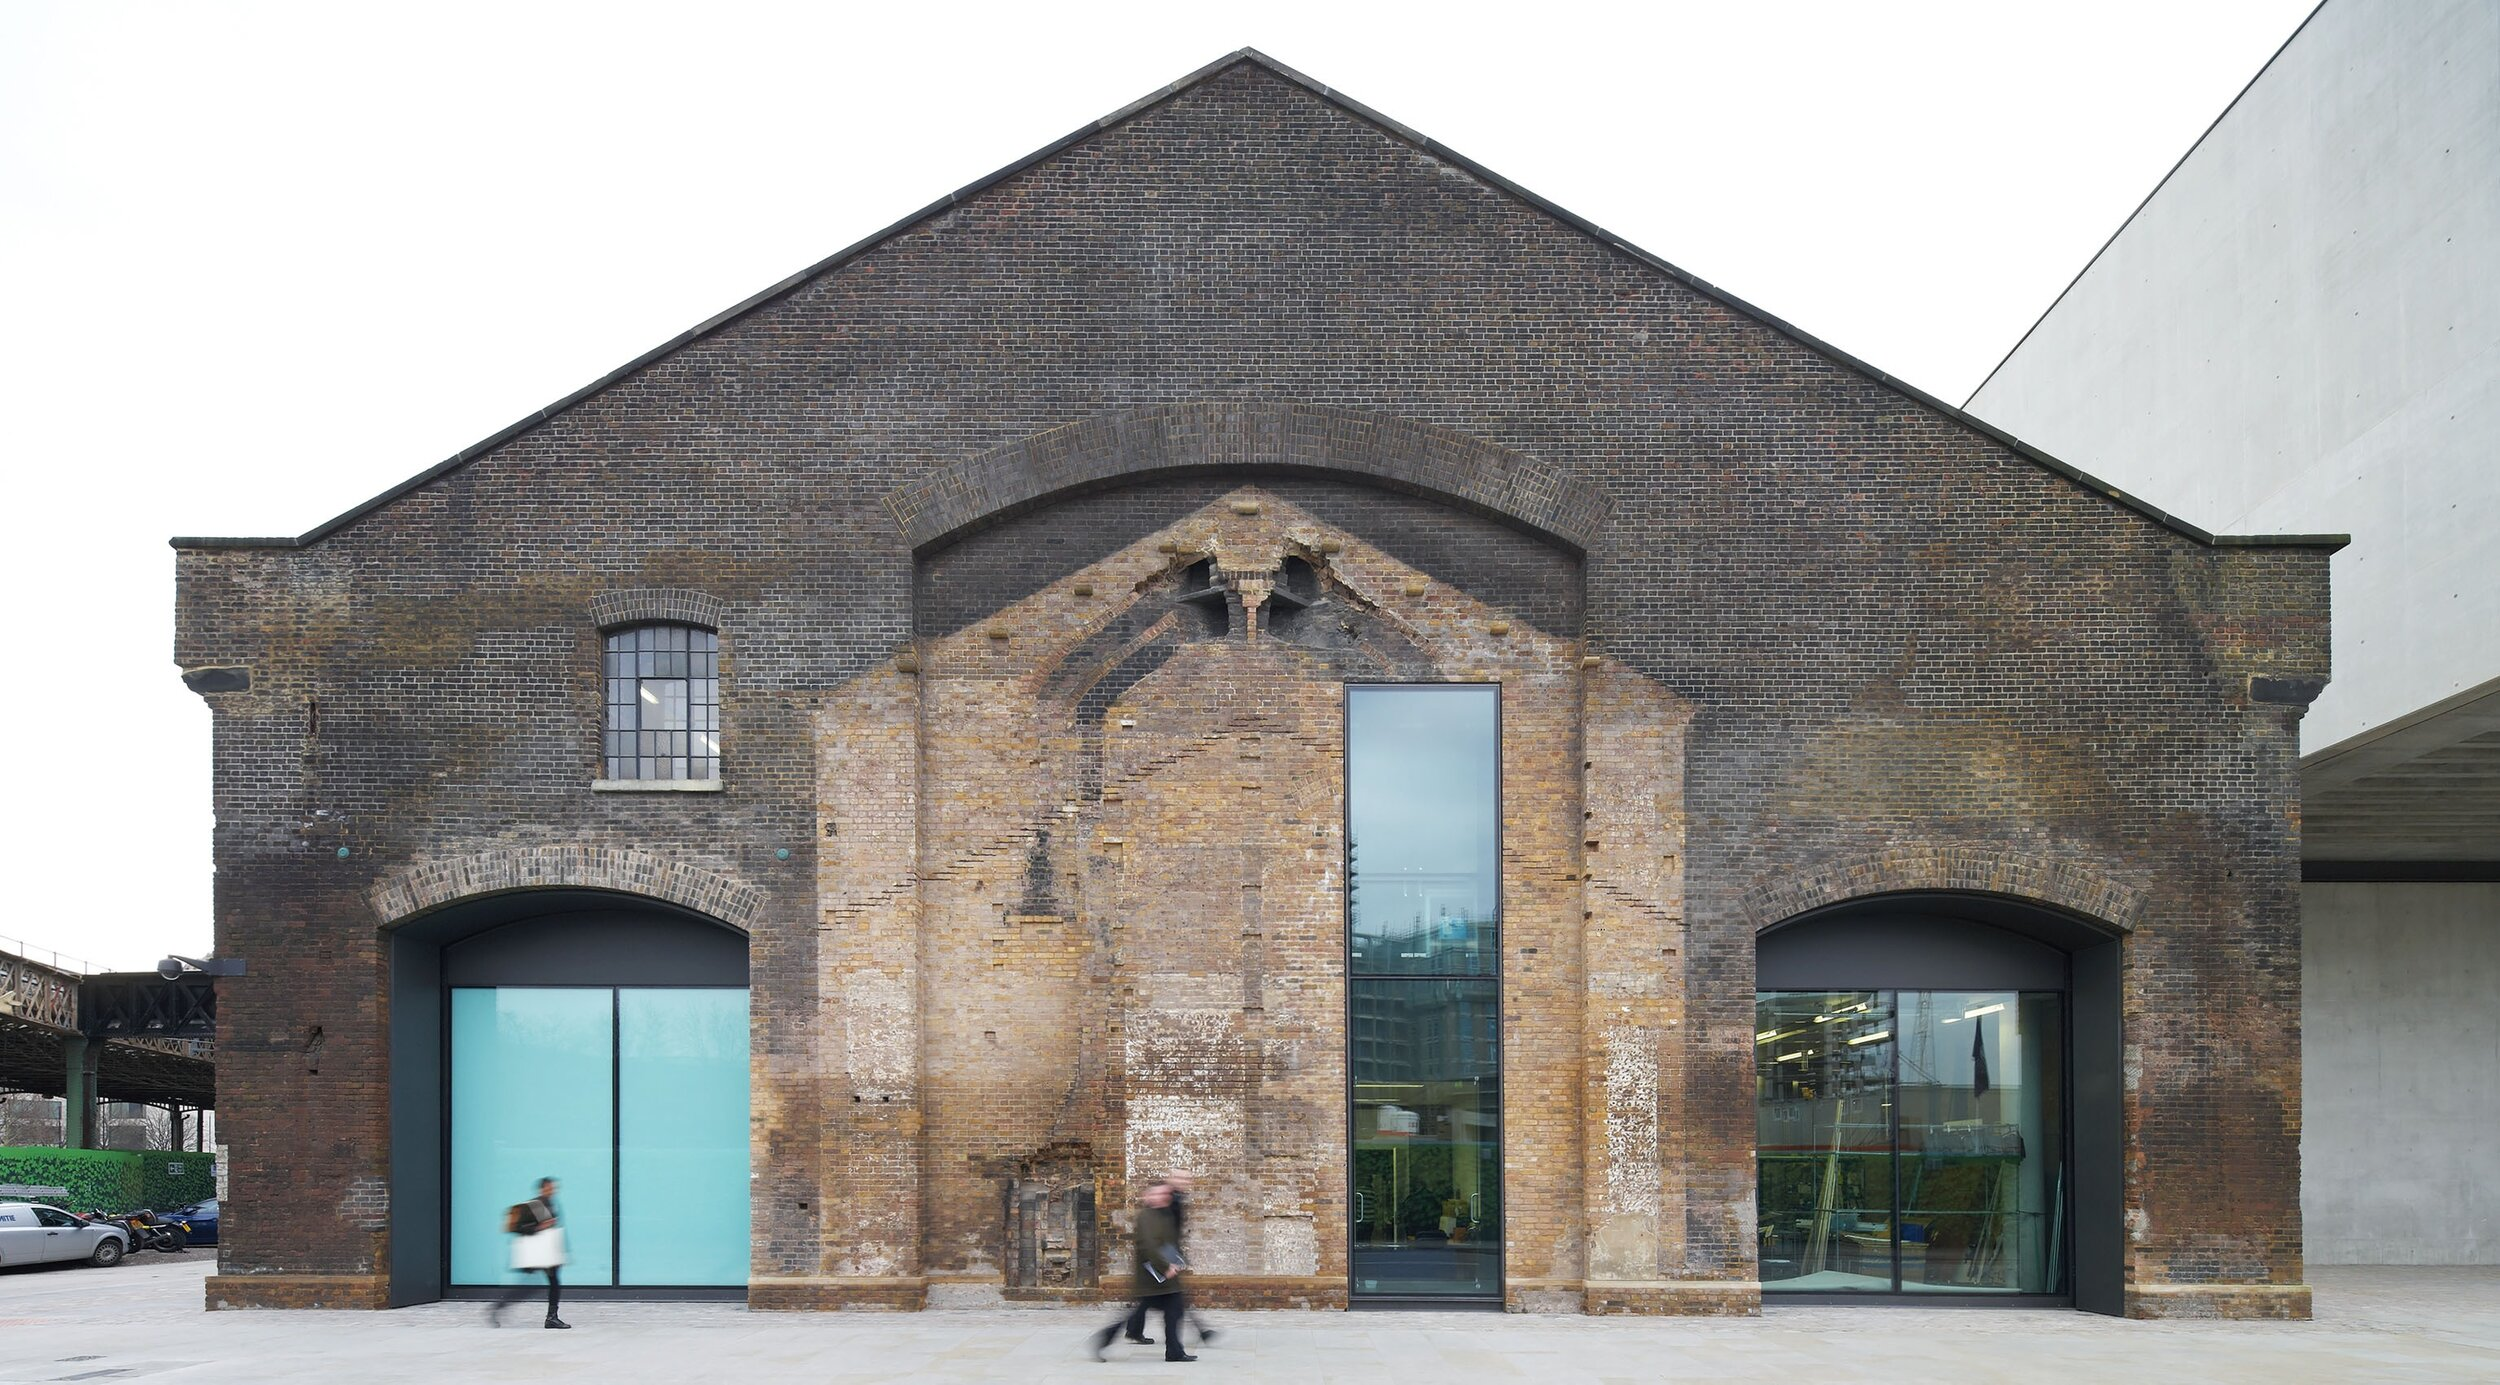 c. Stanton Williams  https://www.stantonwilliams.com/projects/ual-campus-for-central-saint-martins-at-kings-cross/